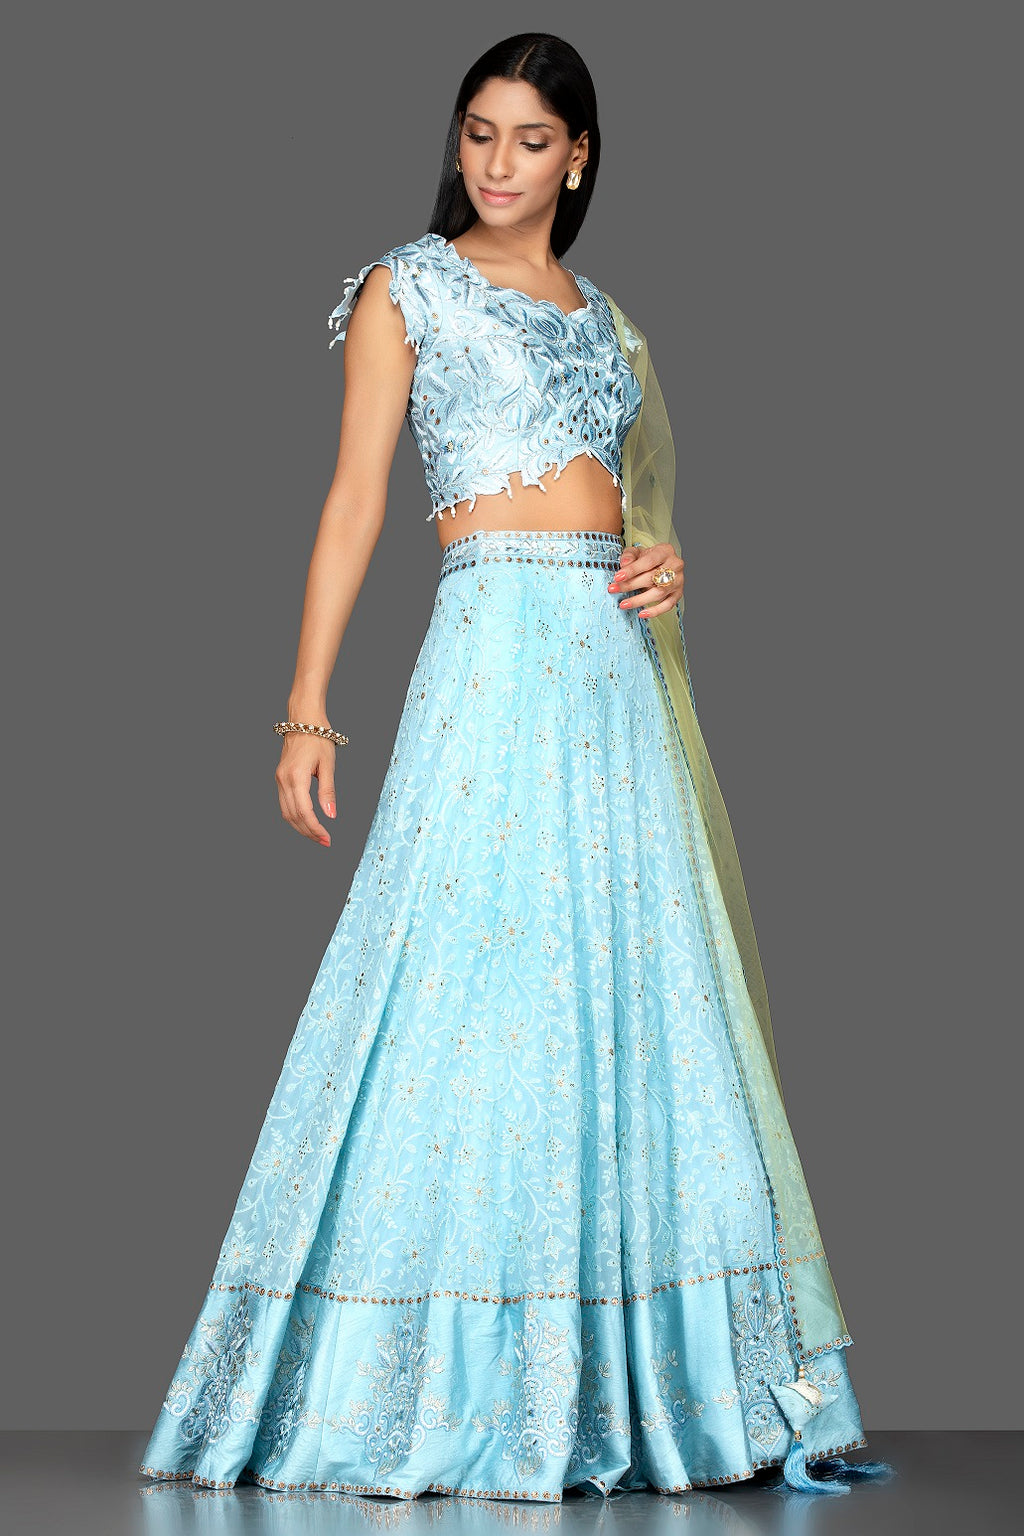 Shop sky blue stone and Lucknowi work georgette lehenga online in USA with green net dupatta. Spread ethnic elegance on weddings and special occasions in splendid designer lehengas, Indowestern dresses crafted with exquisite Indian craftsmanship from Pure Elegance Indian fashion store in USA.-full view